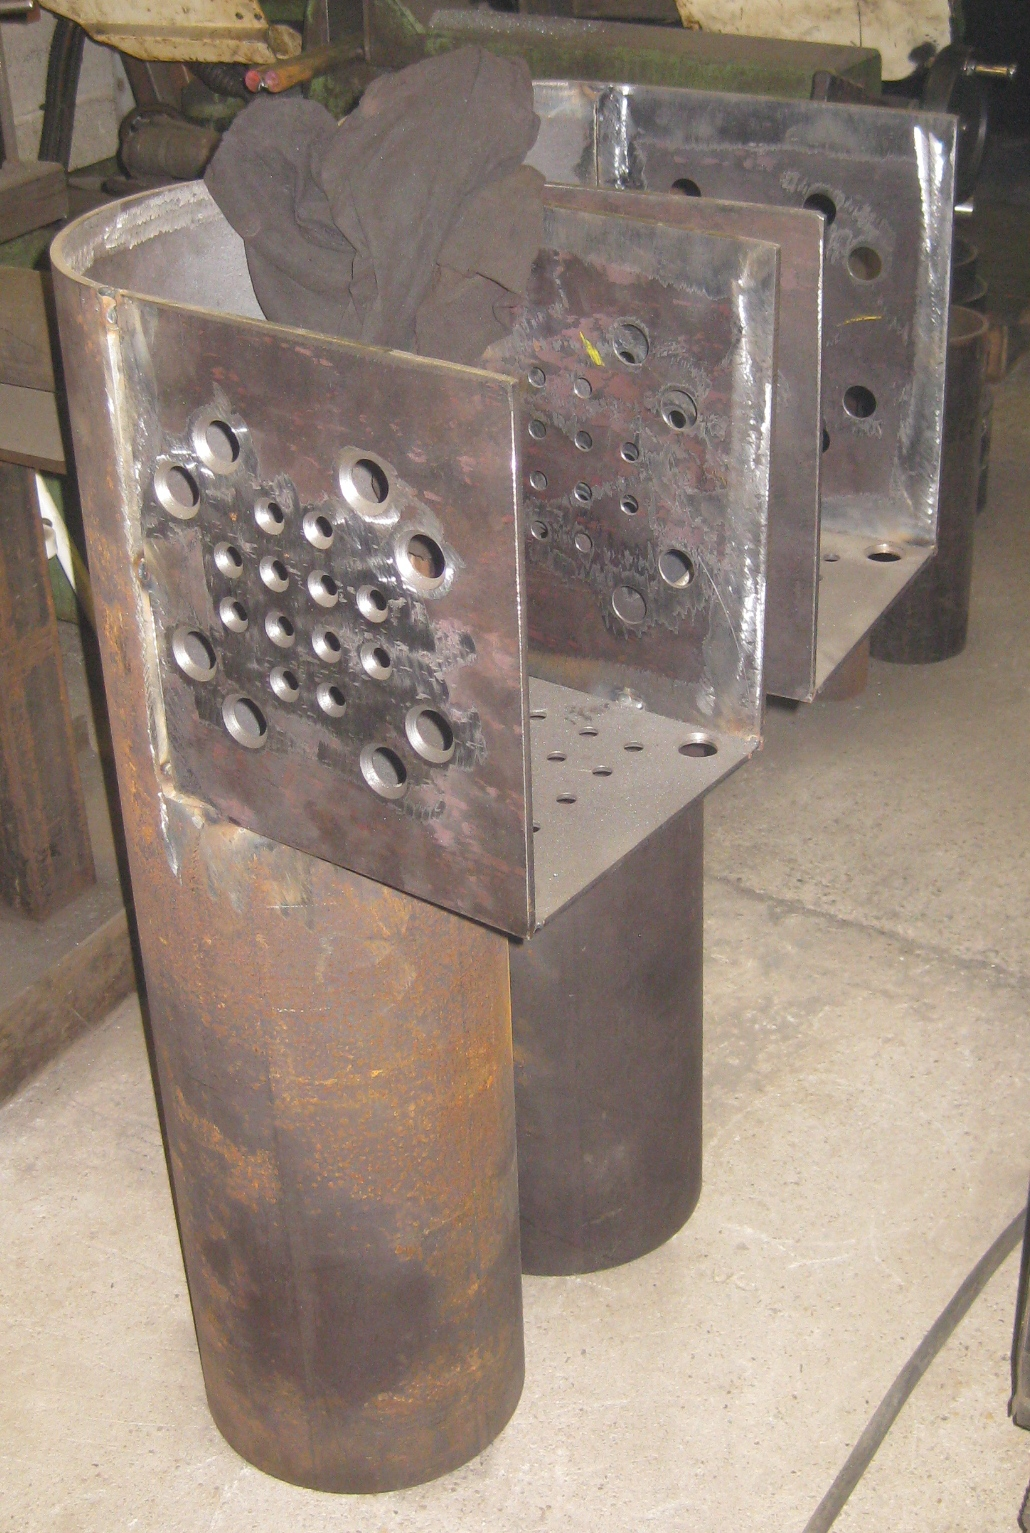 Index of /wp-content/flagallery/little-samson-boilers